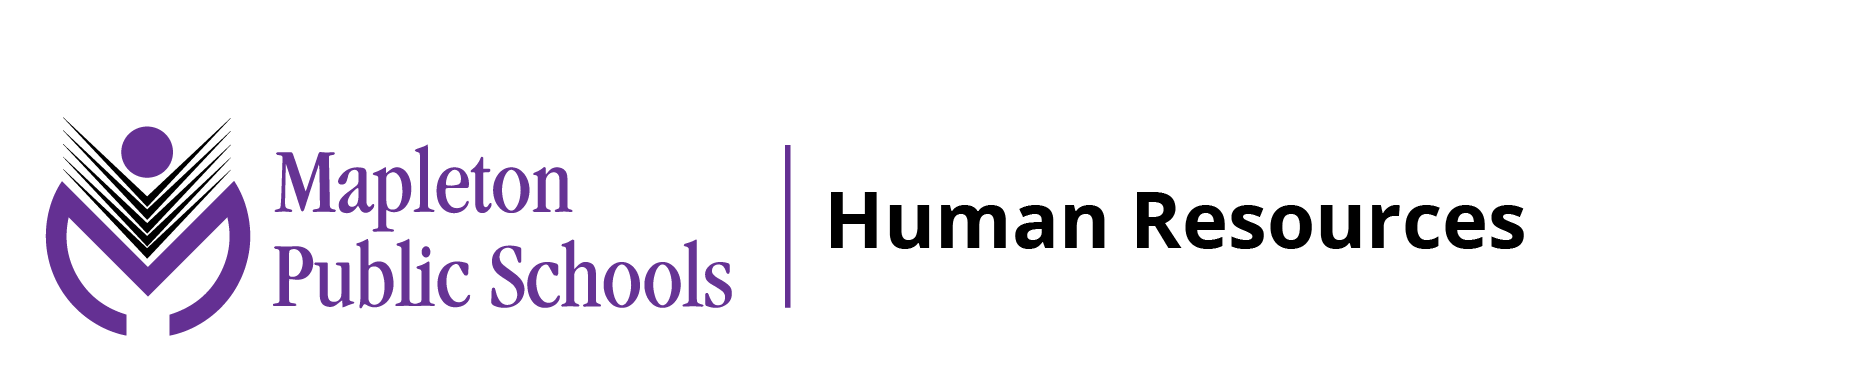 Human Resources / HR Home